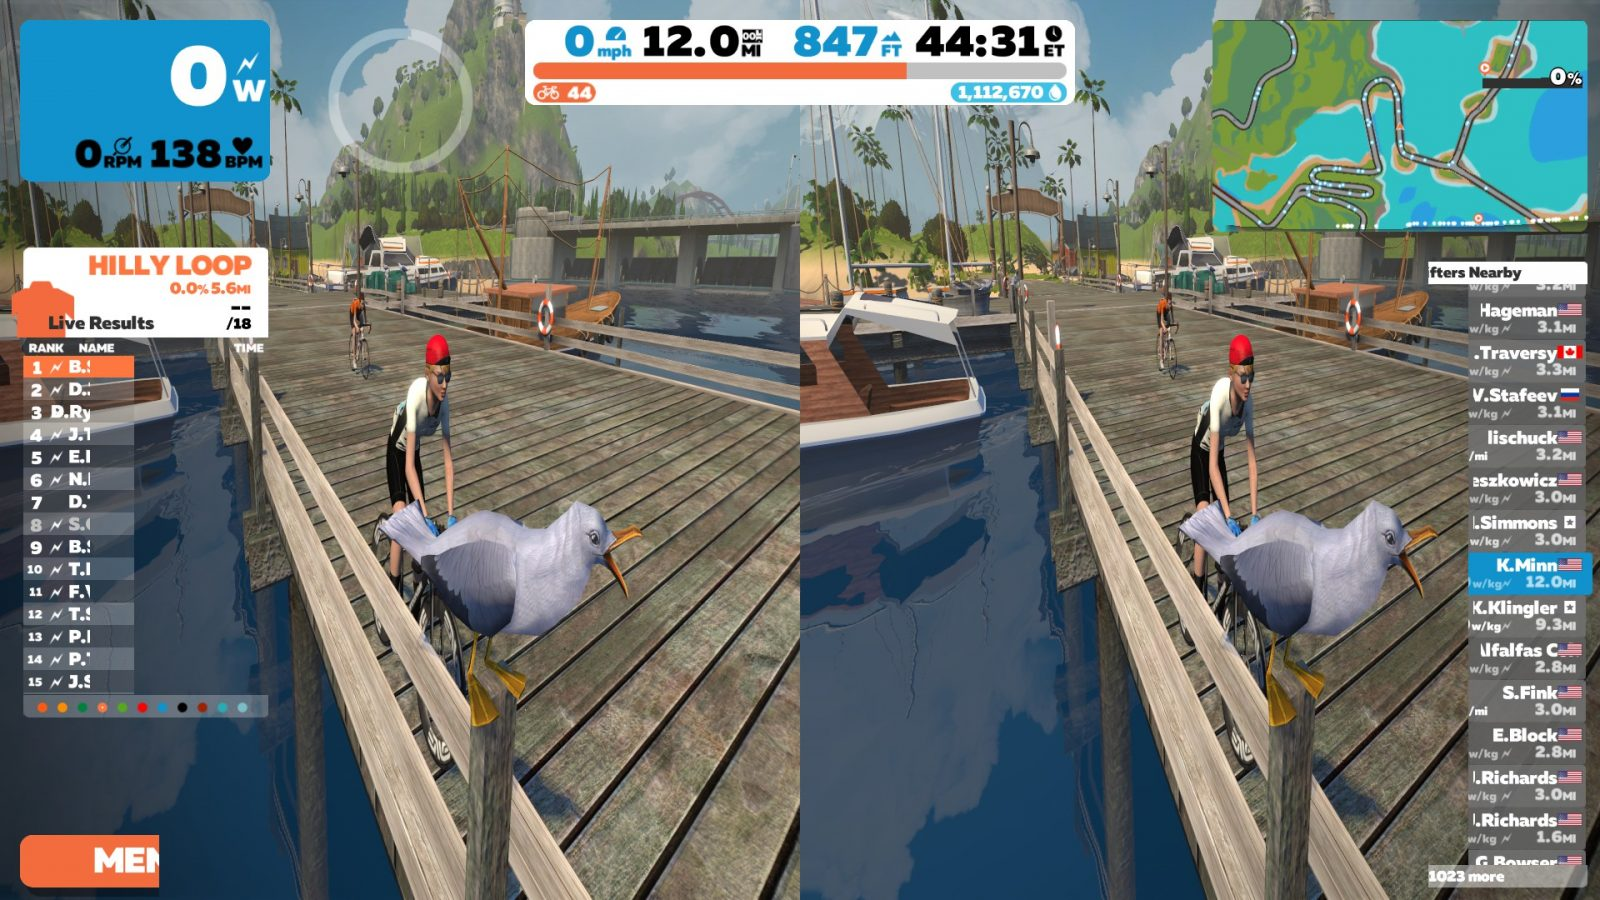 How To Use Zwift In 3d Zwift Insider